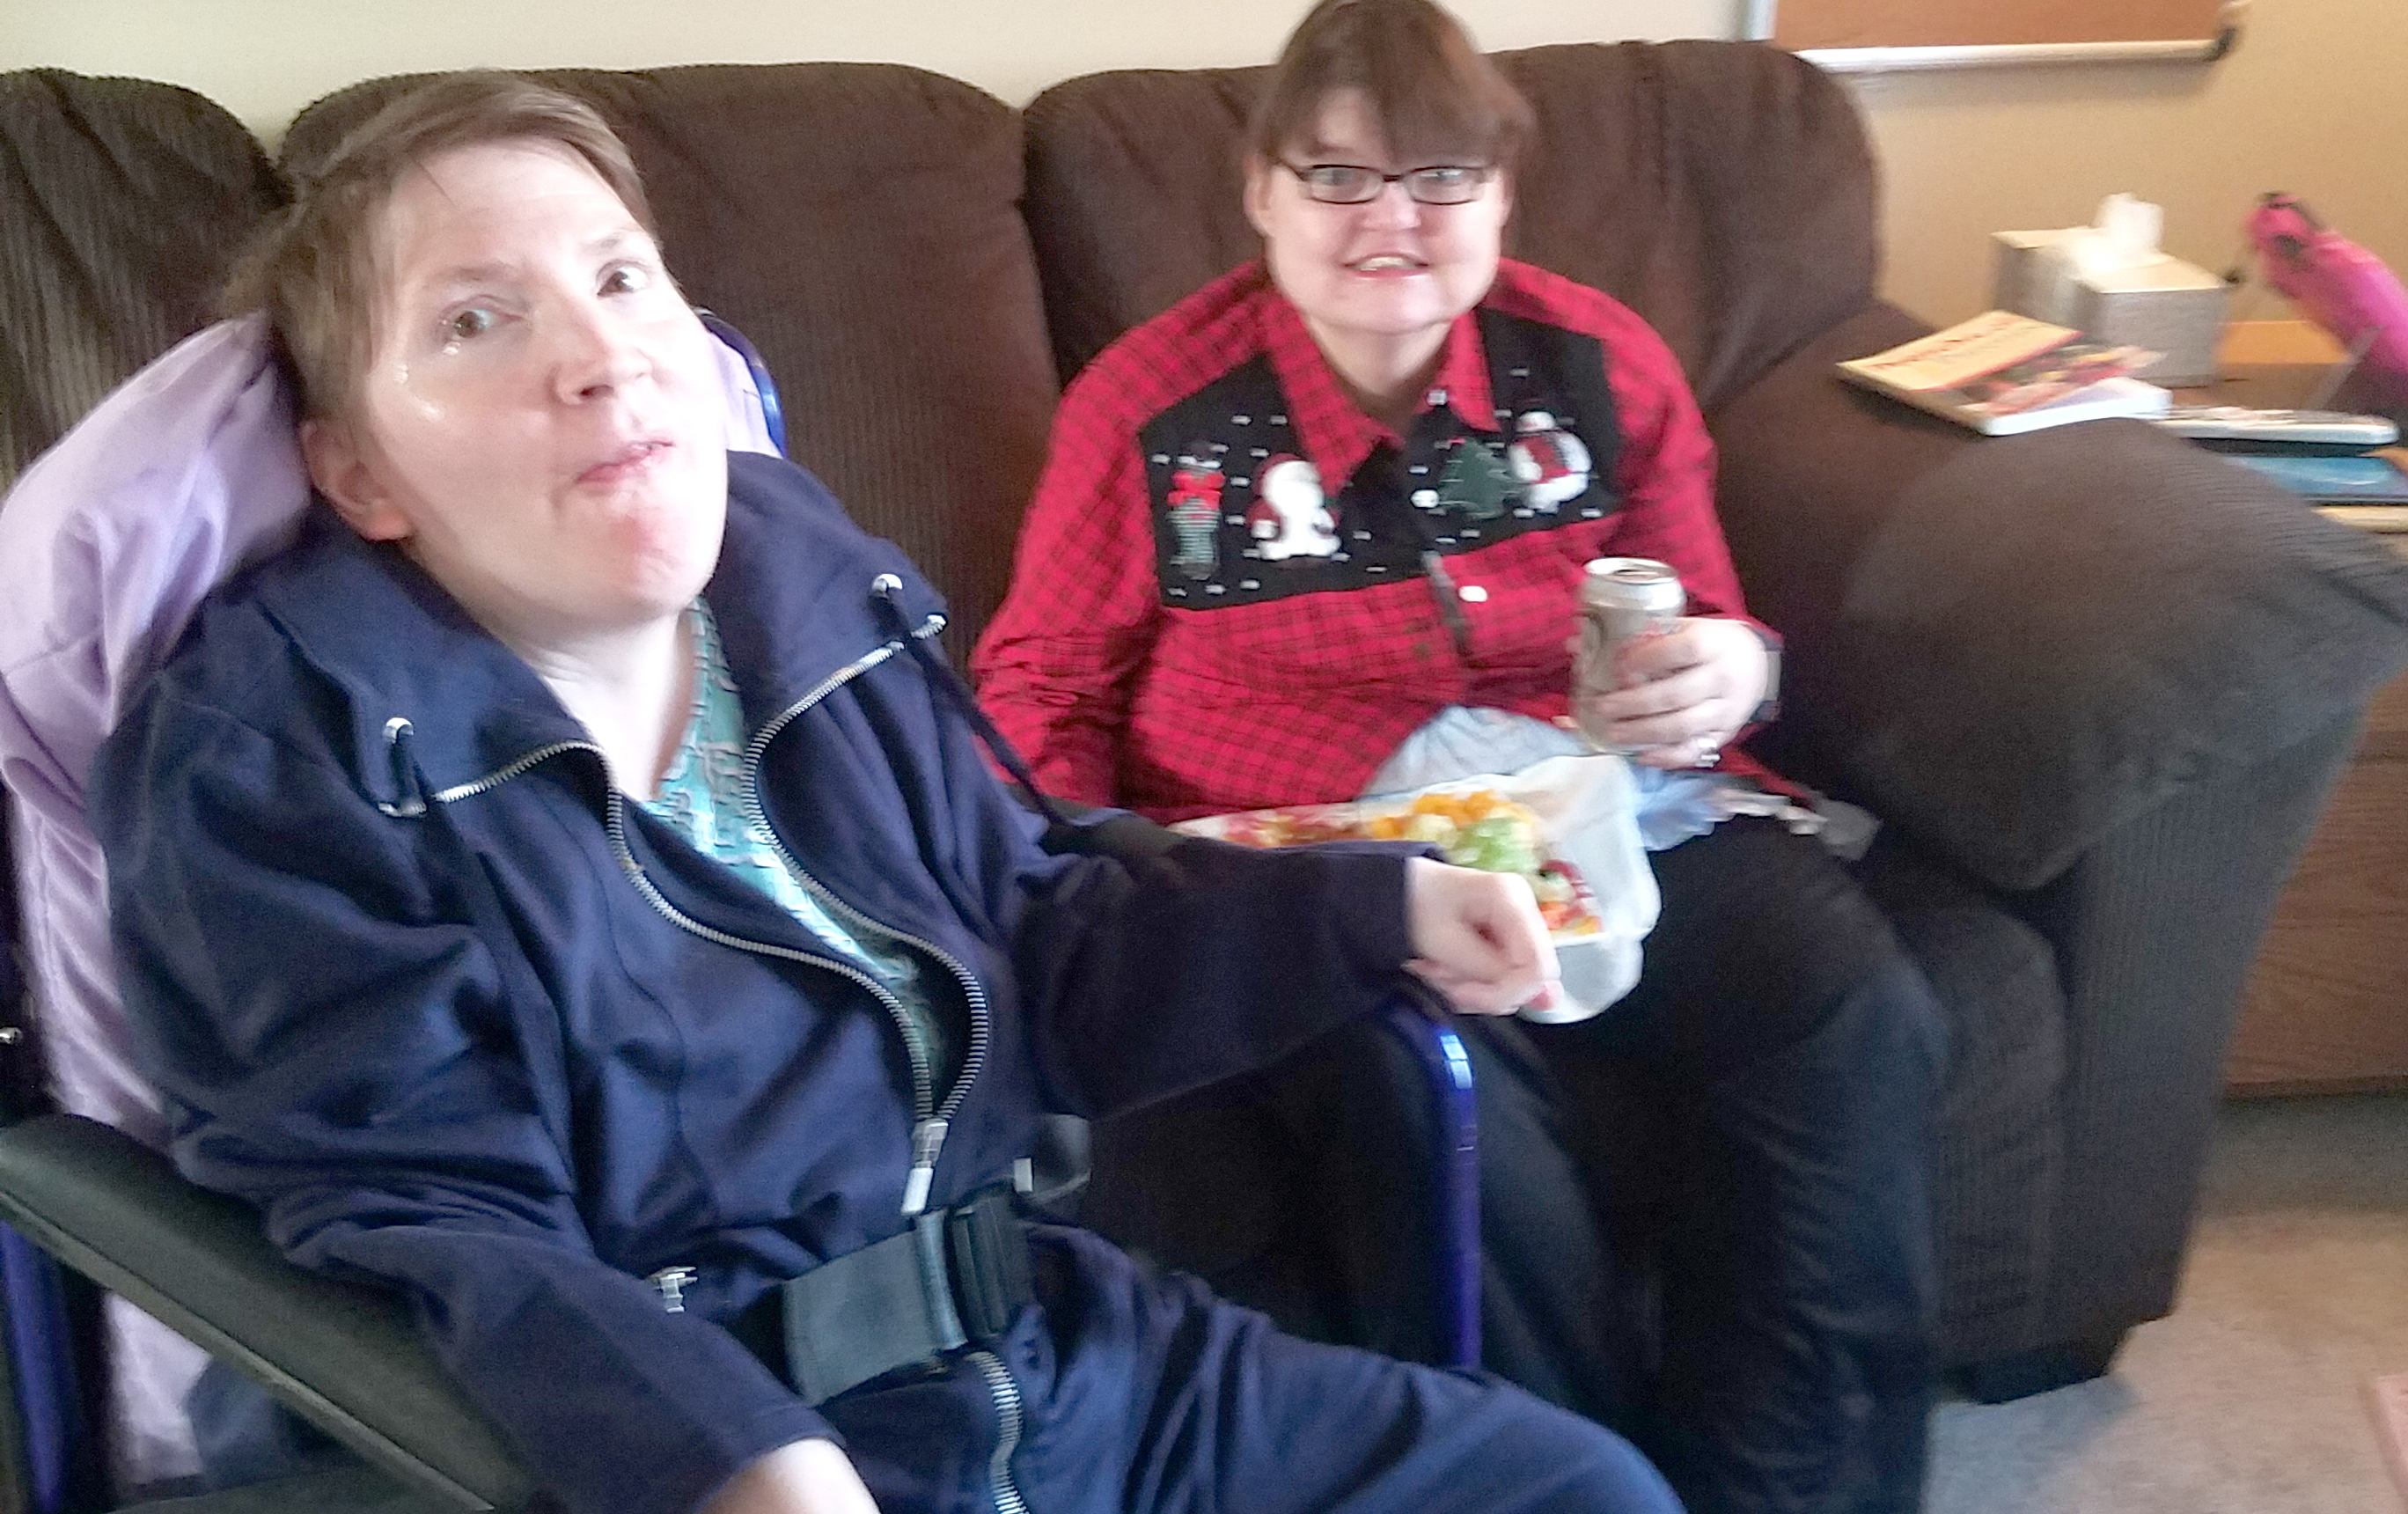 A woman in a wheelchair and her friend, sitting on a couch with a plate of food and a drink, smile at the camera.